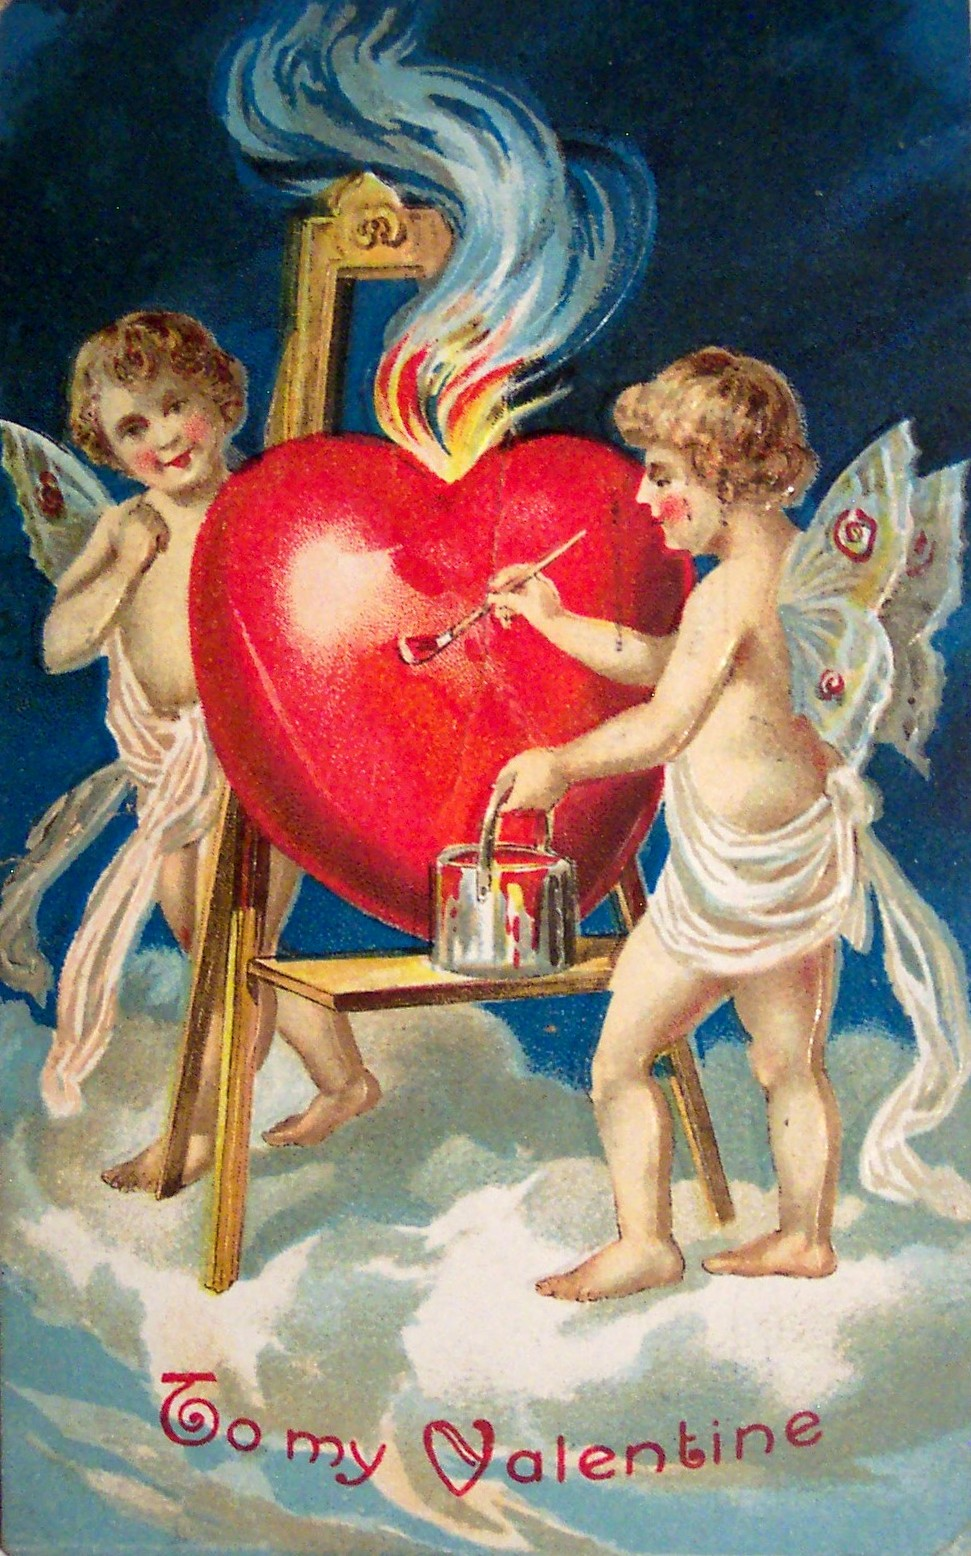 پرونده:Antique Valentine 1909 01.jpg